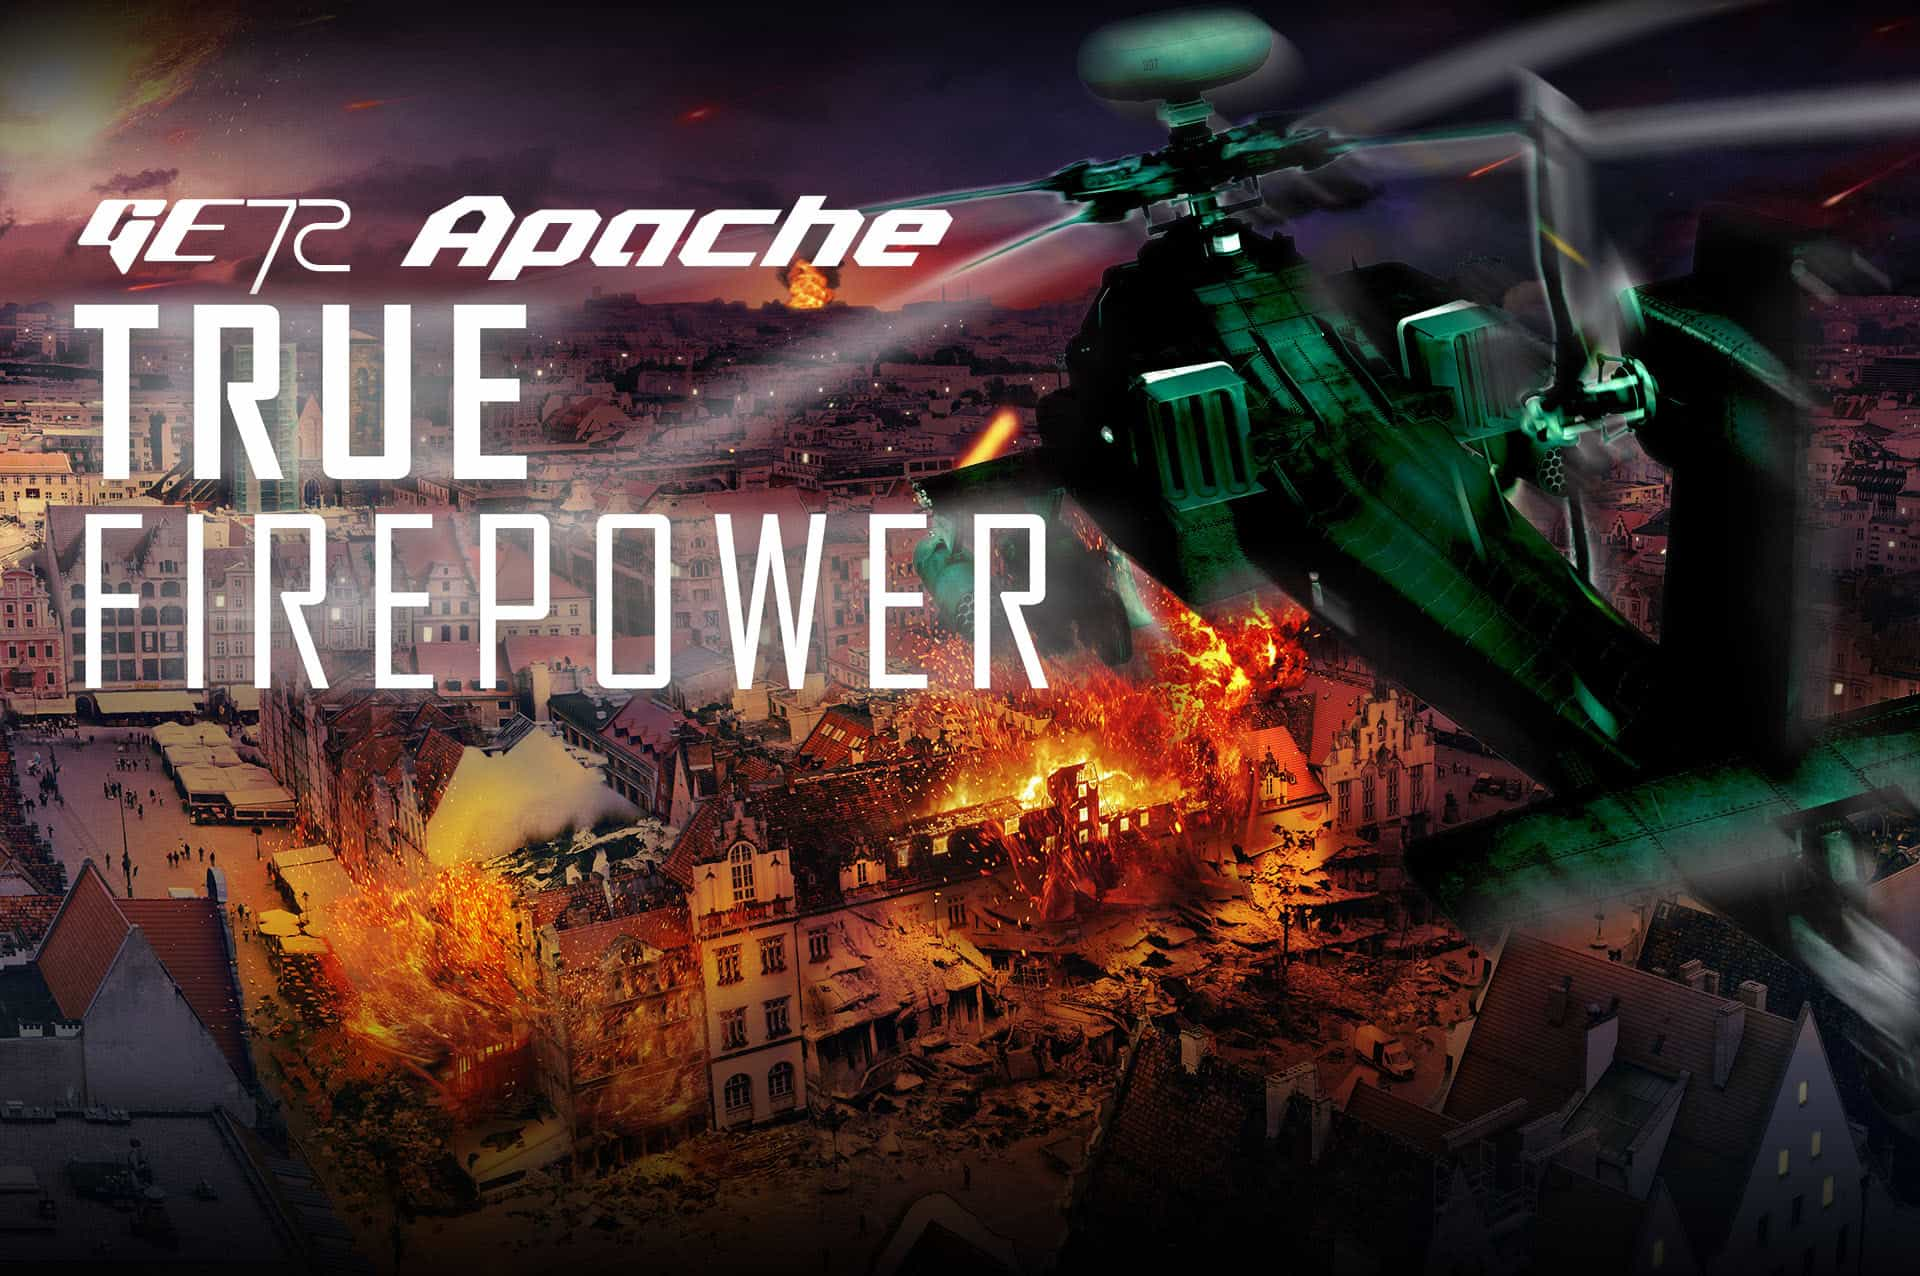 GE72_apache_cover_1